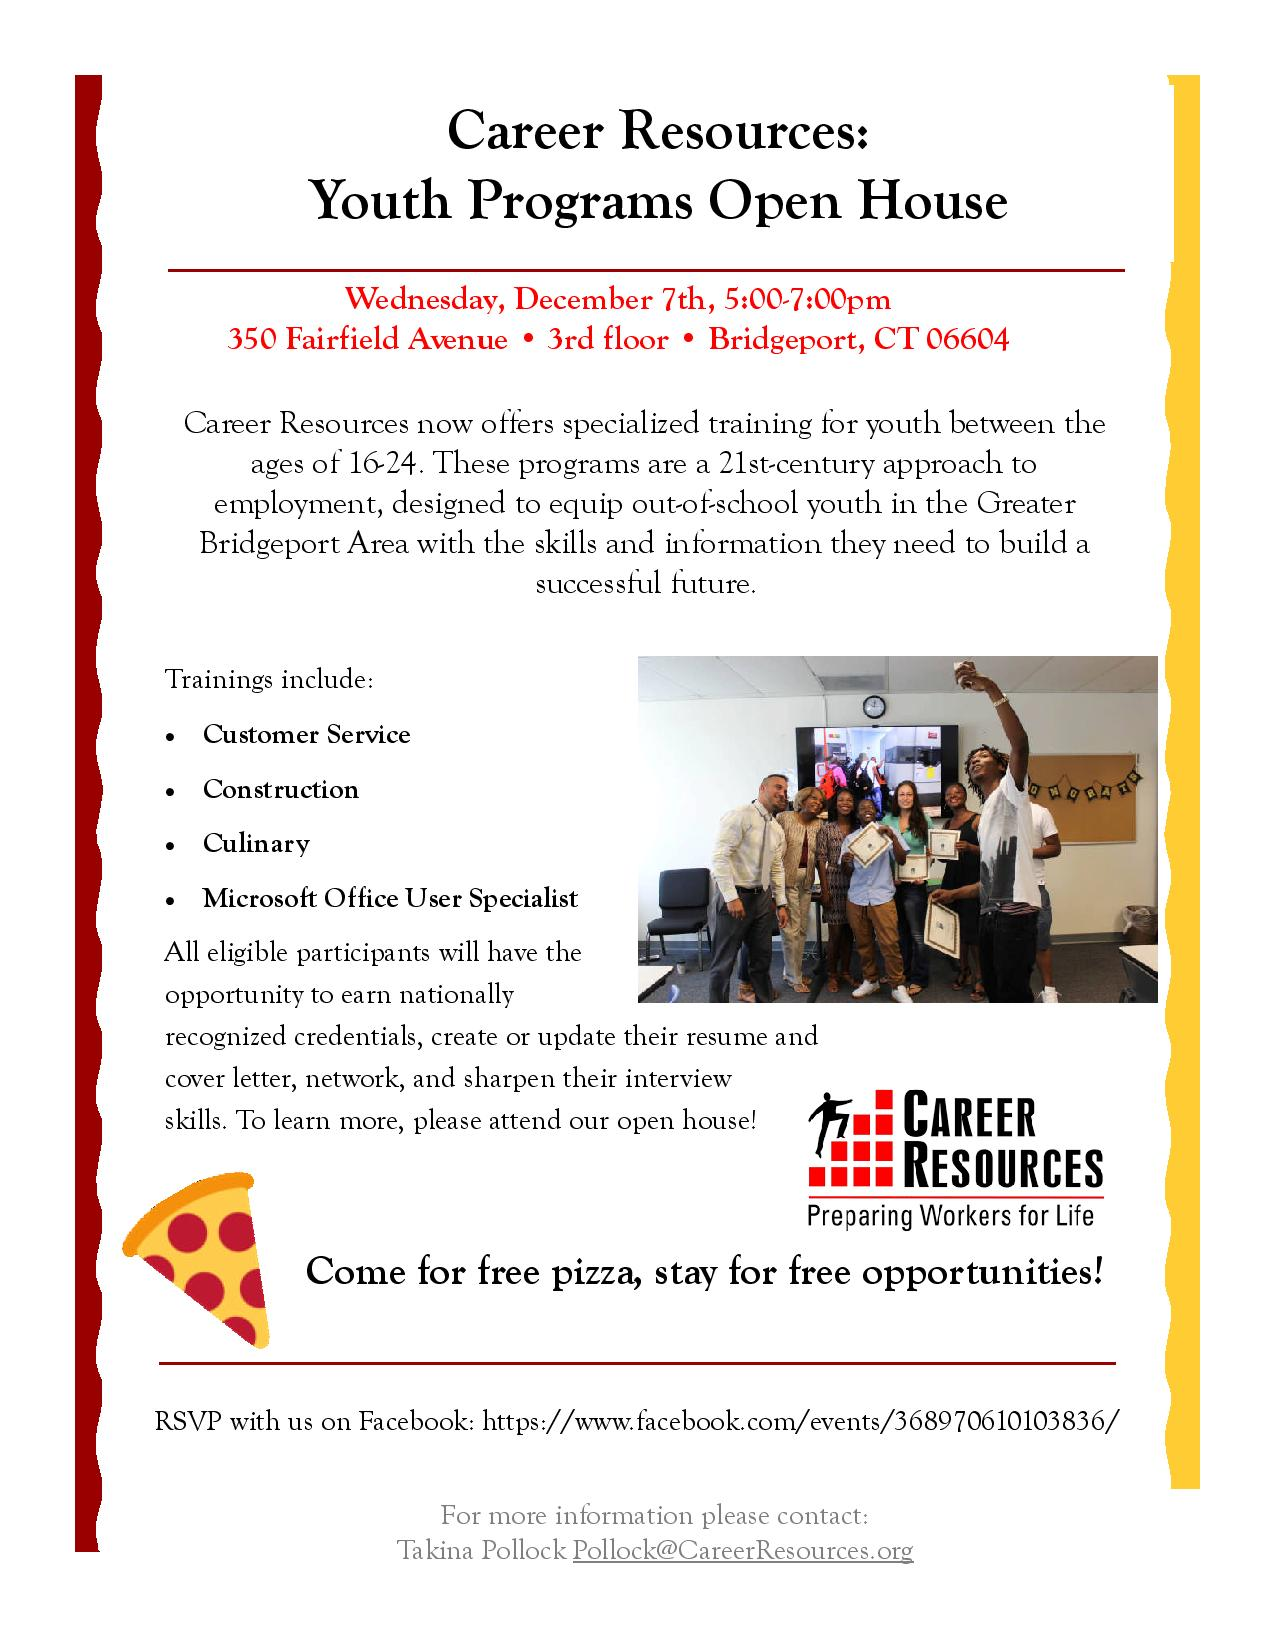 career resources youth programs open house turning point ct career resources youth programs open house